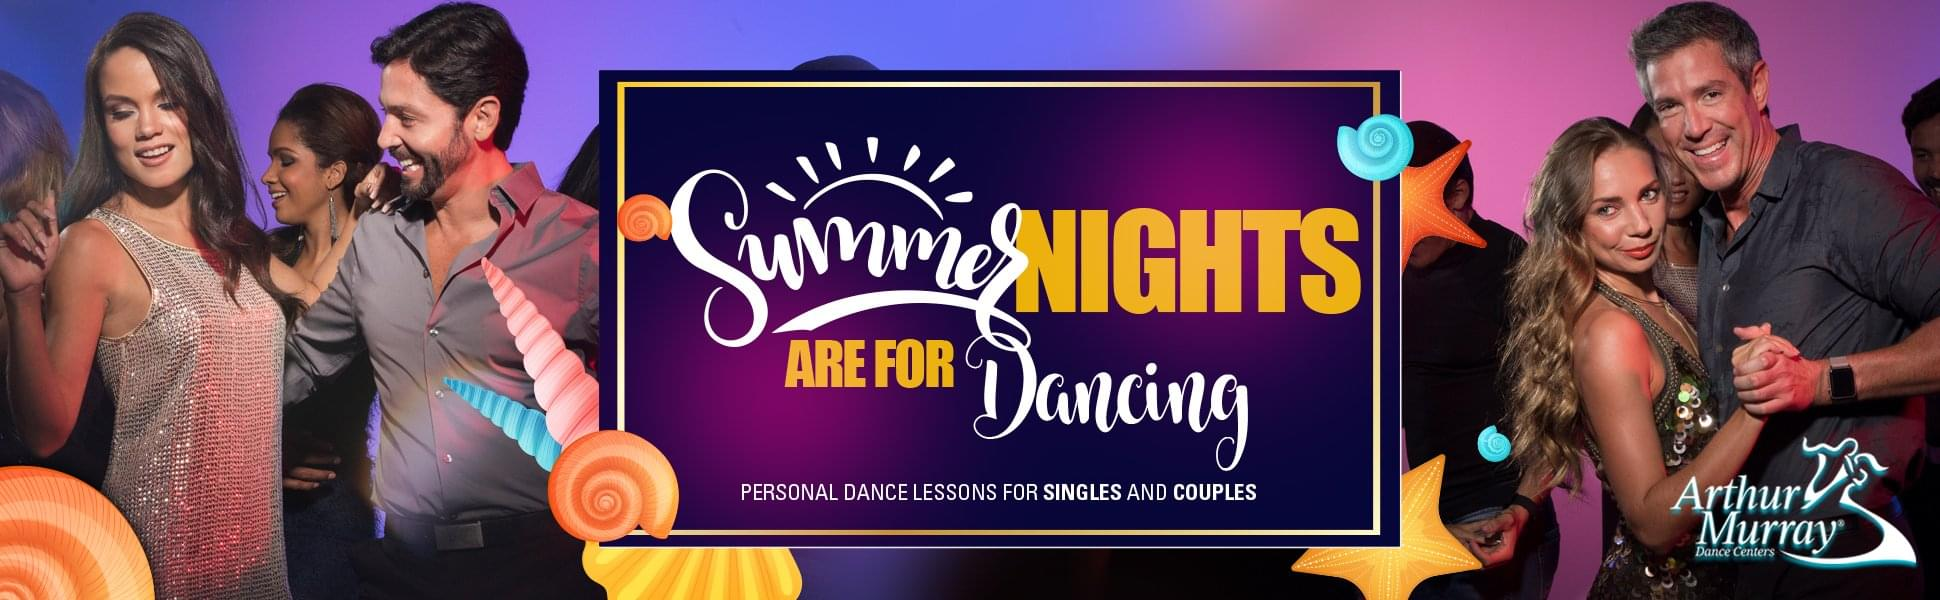 Dance Lessons For Singles and Couples